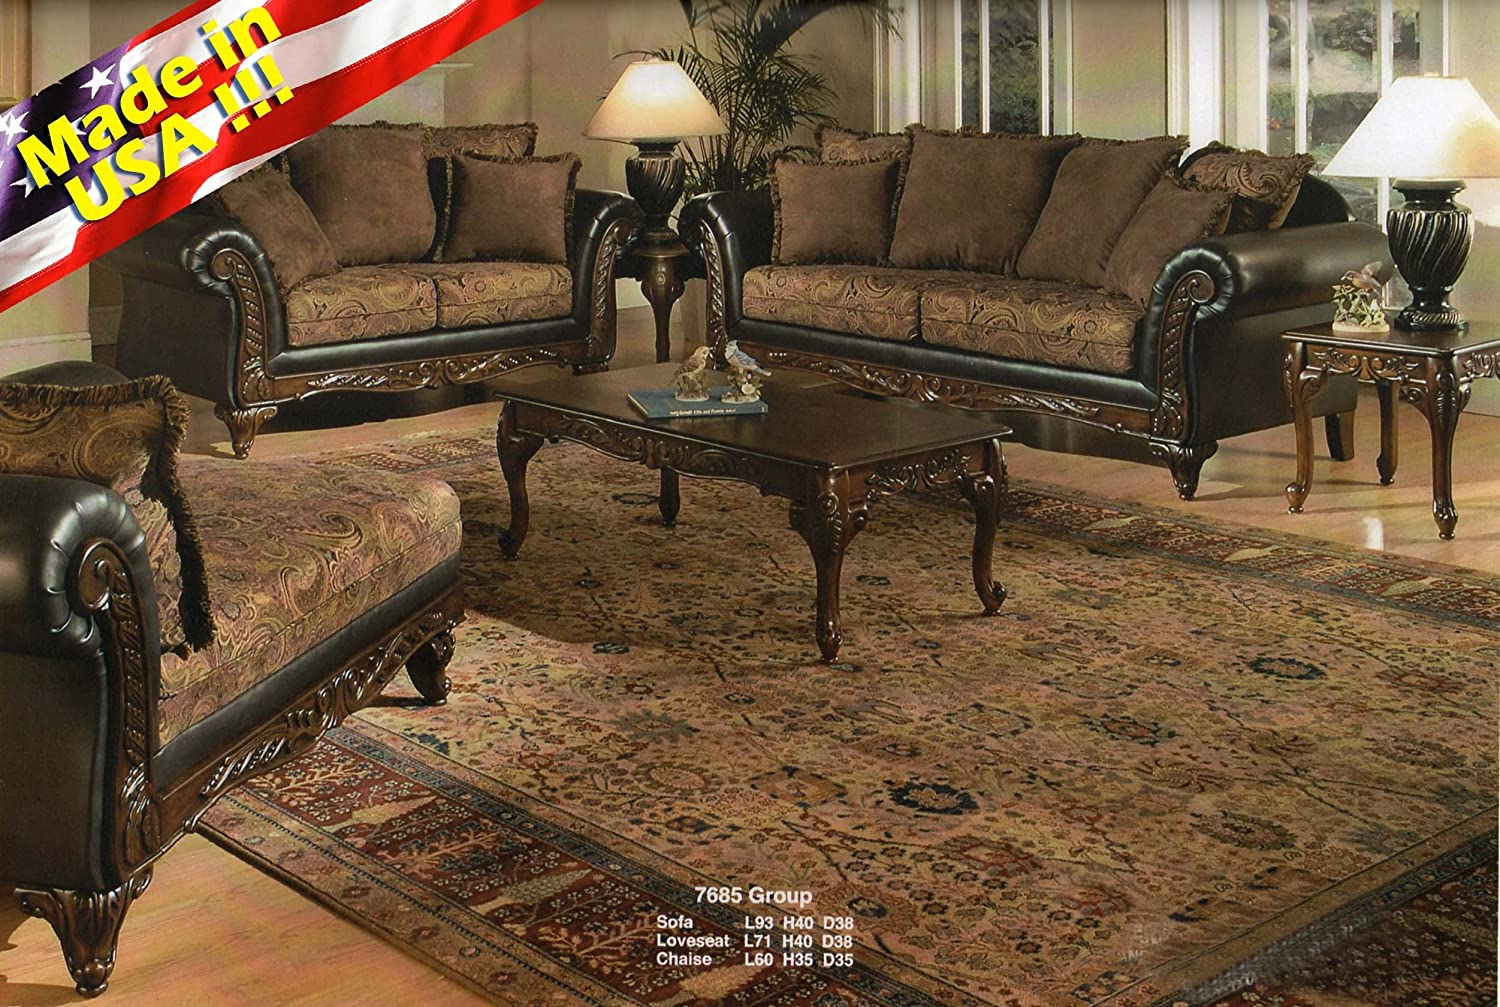 Amazon.com: Roundhill Furniture San Marino 2 Tone Fabric Sofa U0026 Loveseat,  Chocolate: Kitchen U0026 Dining